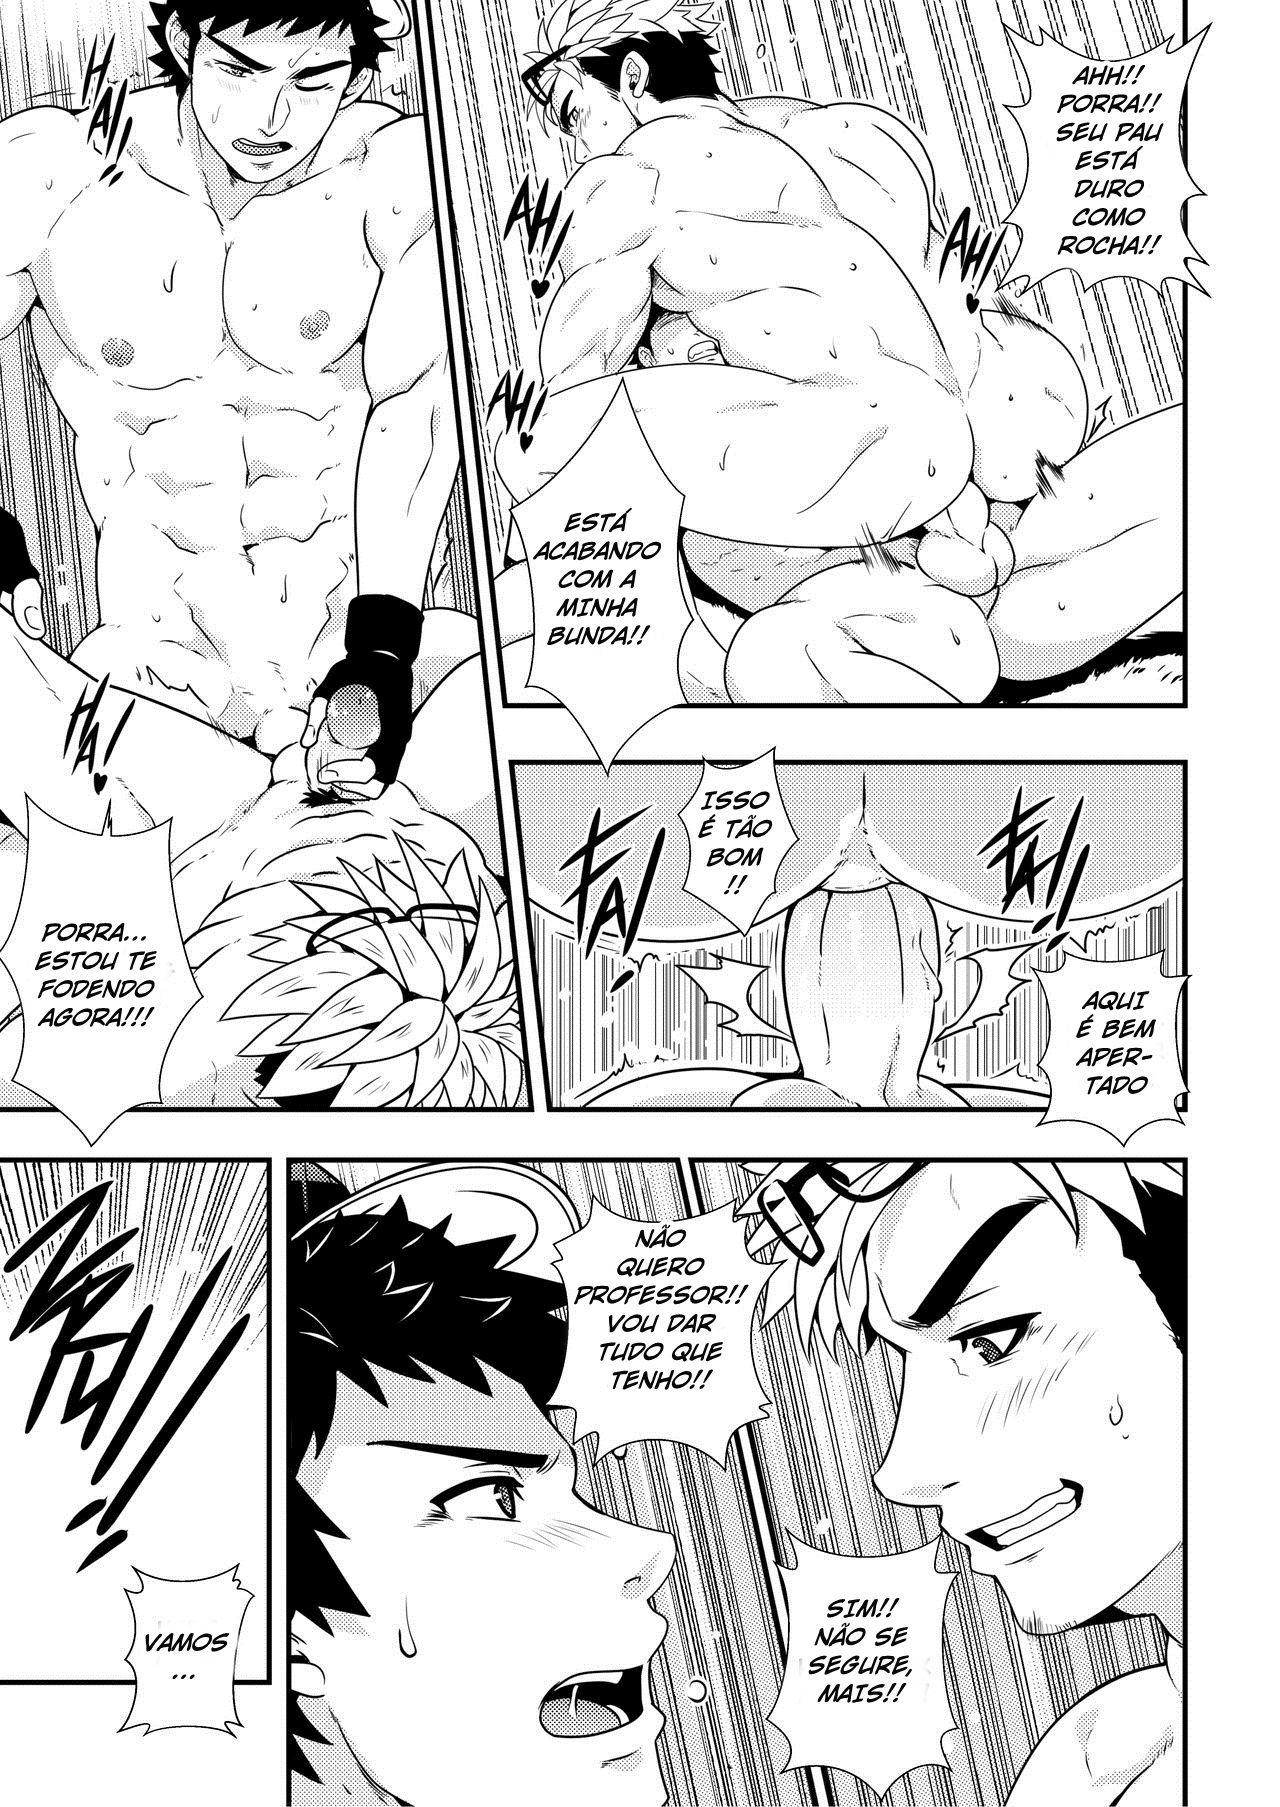 Pokémon Hentai Gay - Foto 12